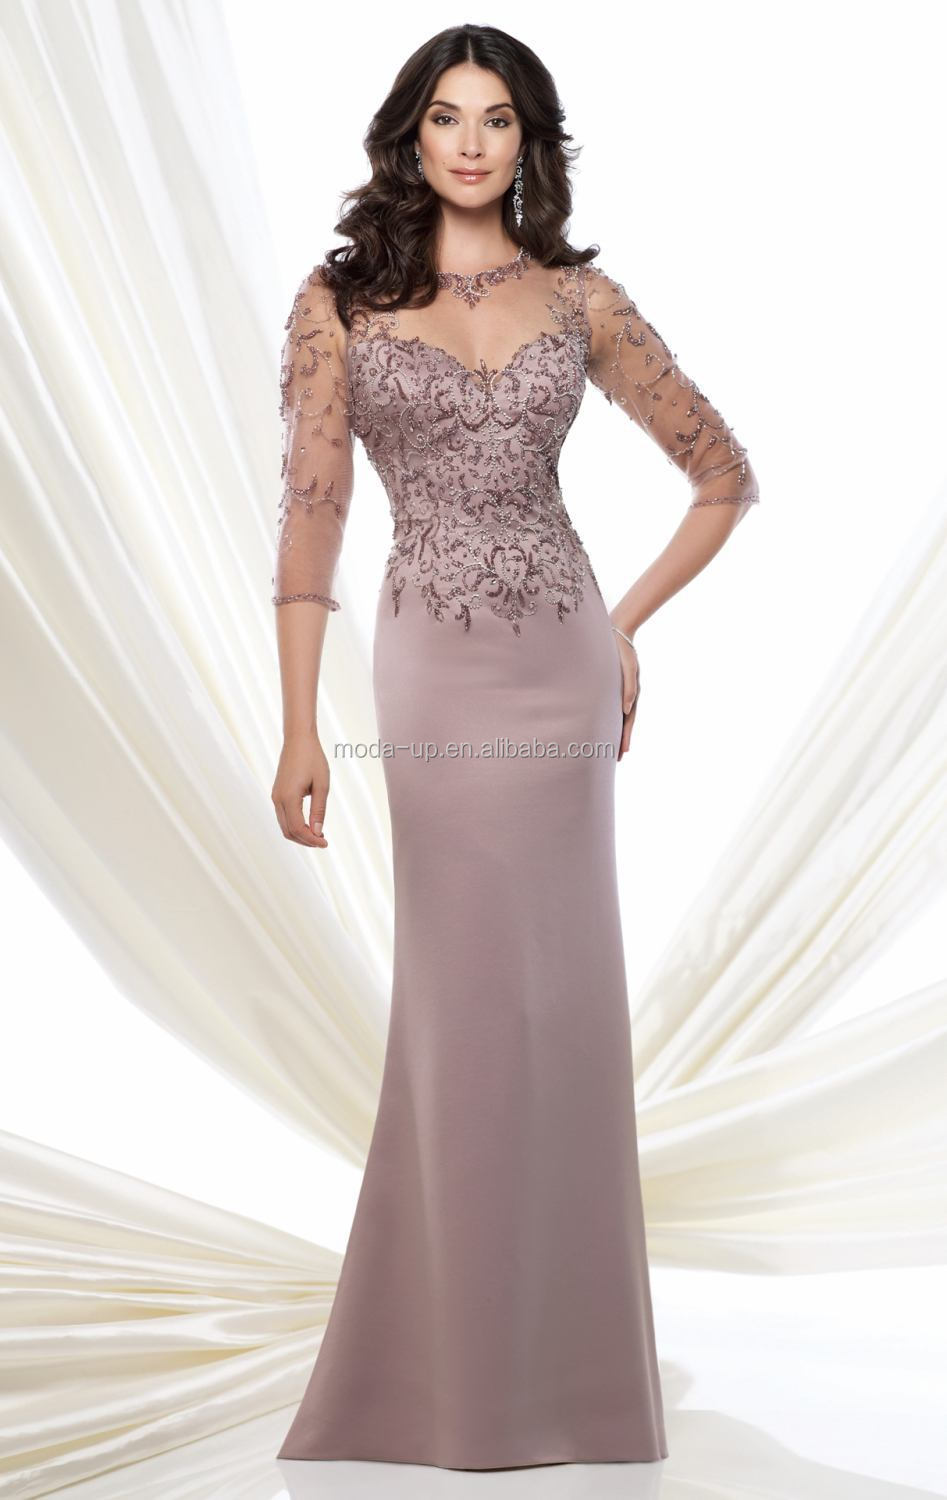 Wholesale Sexy-mother-of-the-bride-dresses-free-photos- fat mother ...